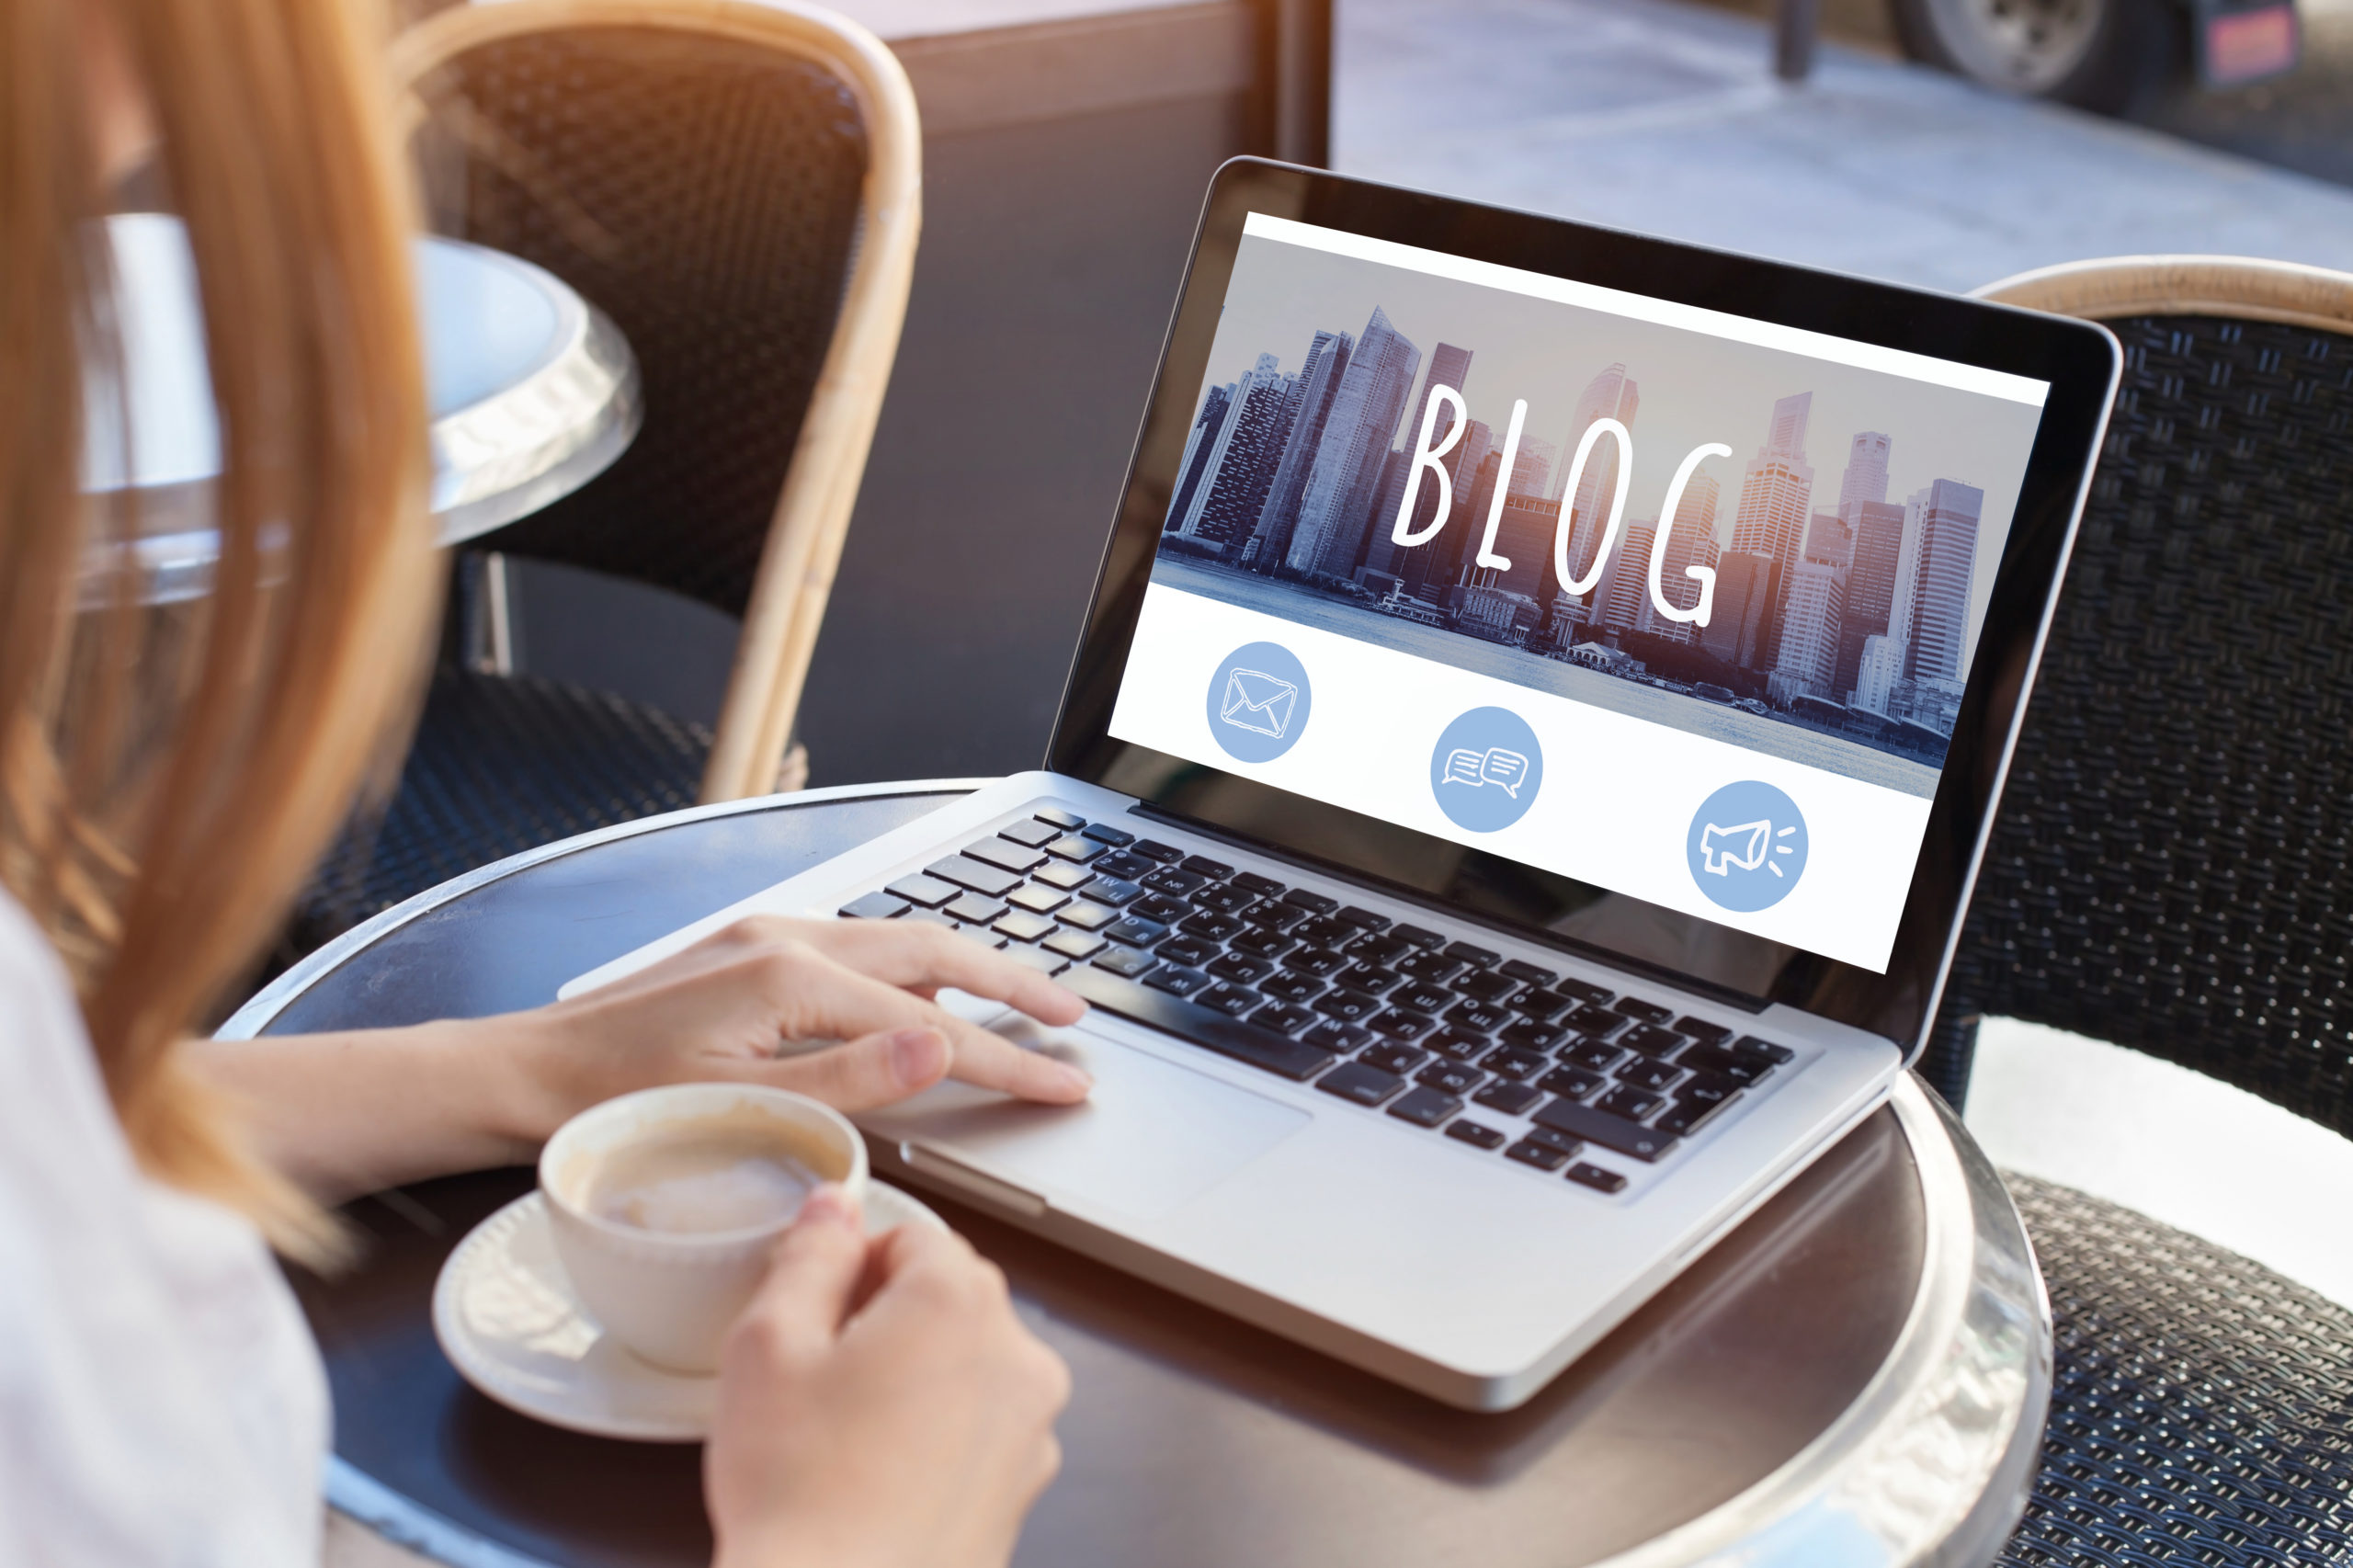 How Many Words Should a Blog Post Be?